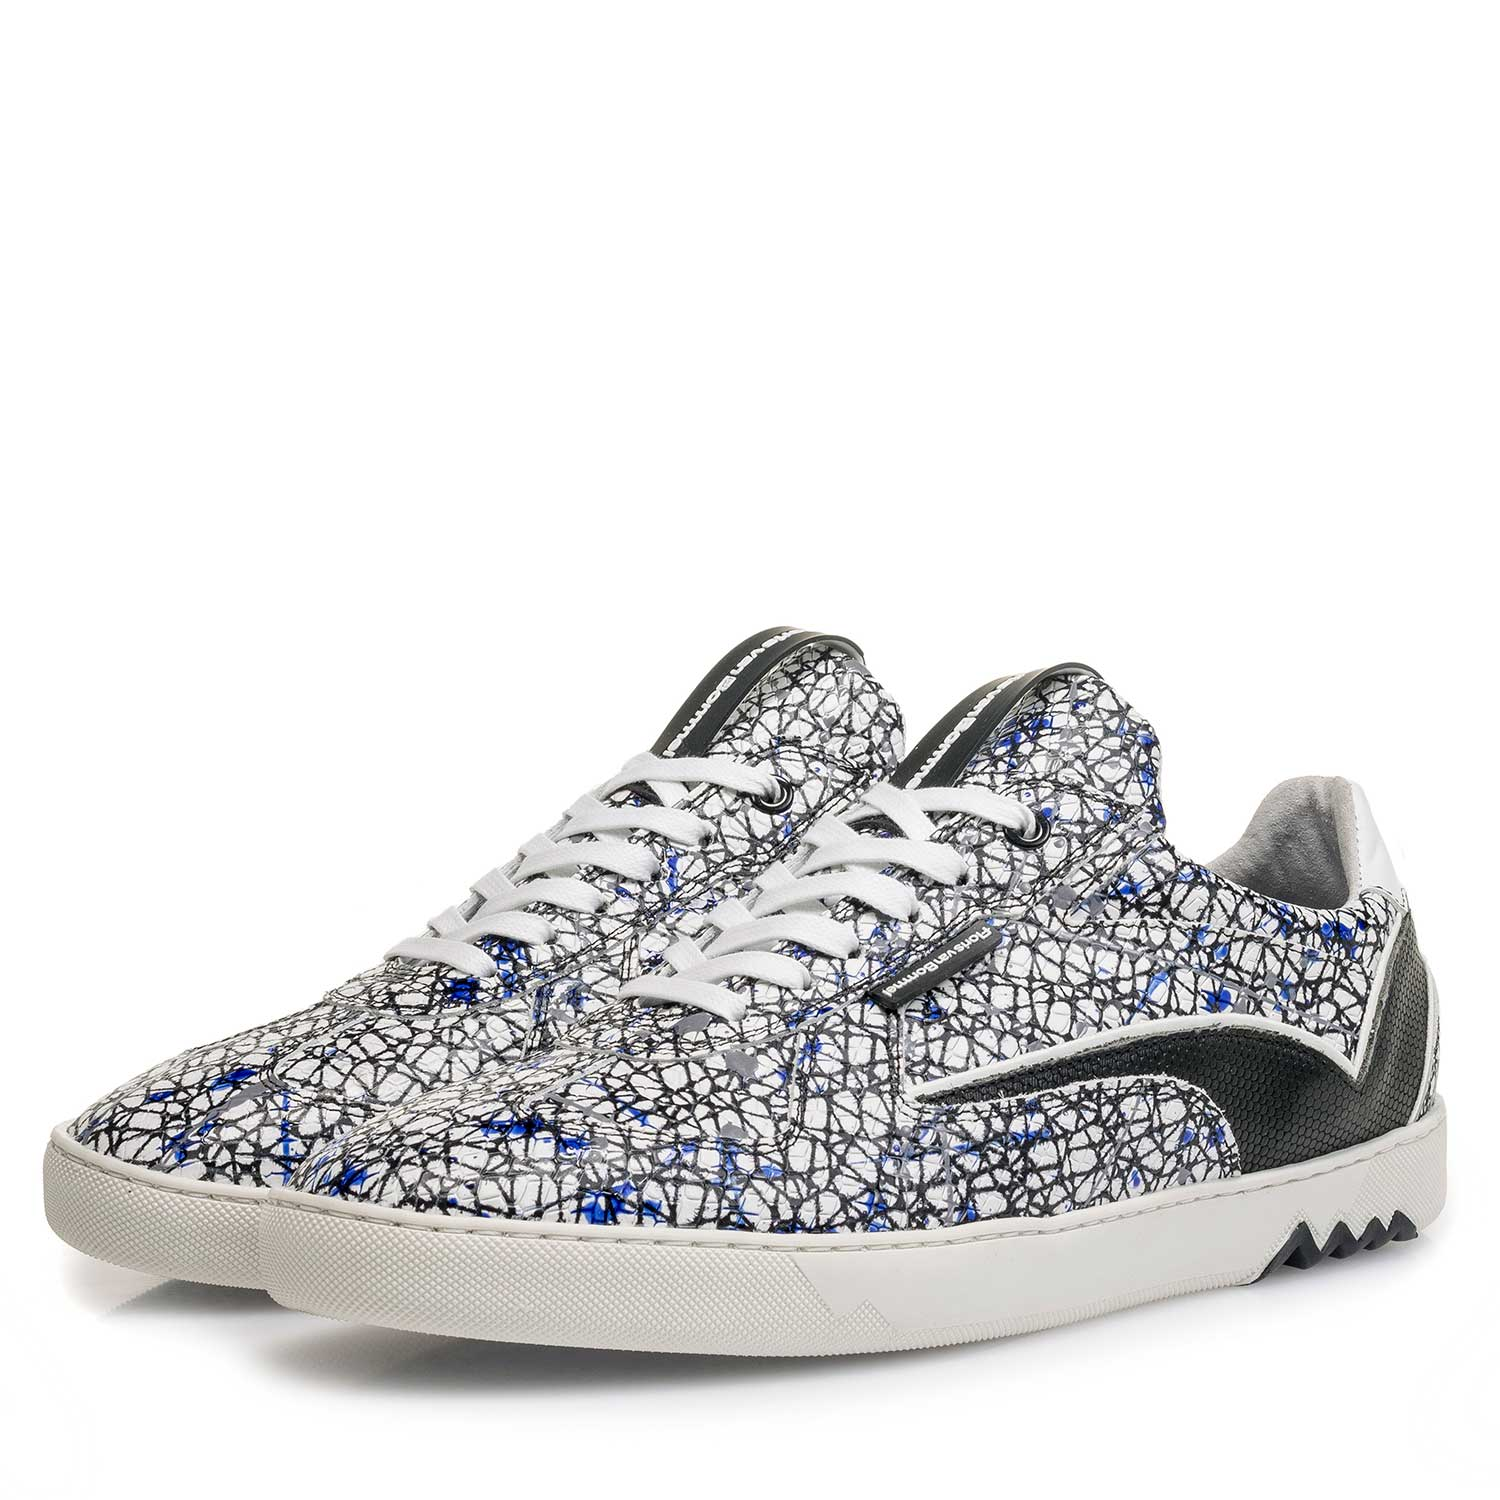 16342/08 - White calf leather sneaker with a print